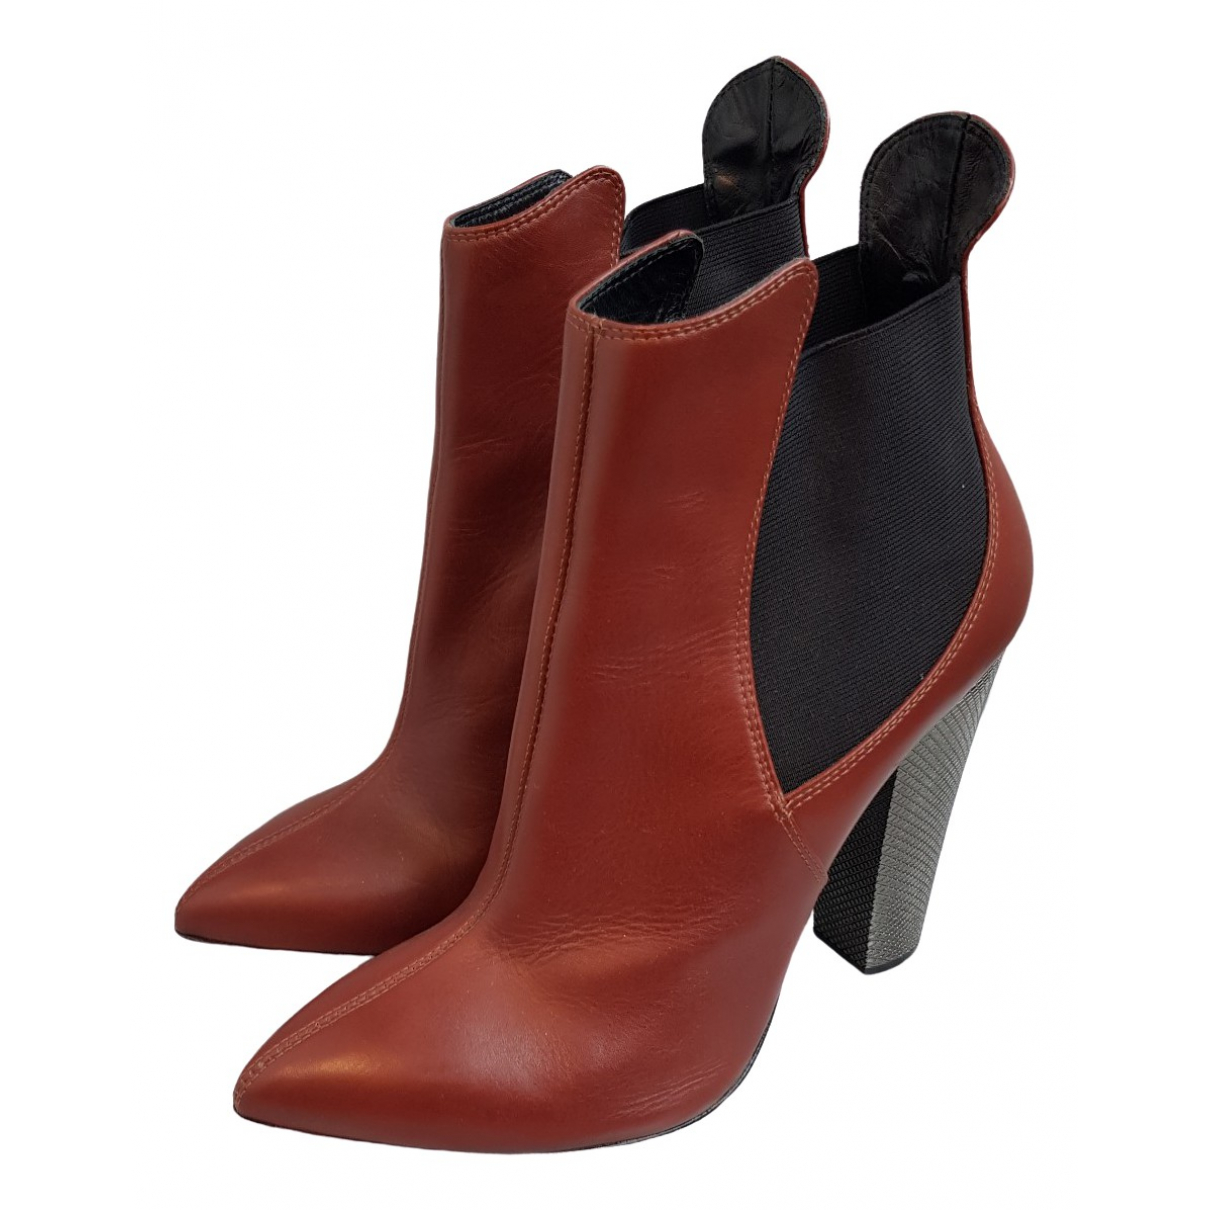 Giuseppe Zanotti \N Brown Leather Ankle boots for Women 39.5 EU